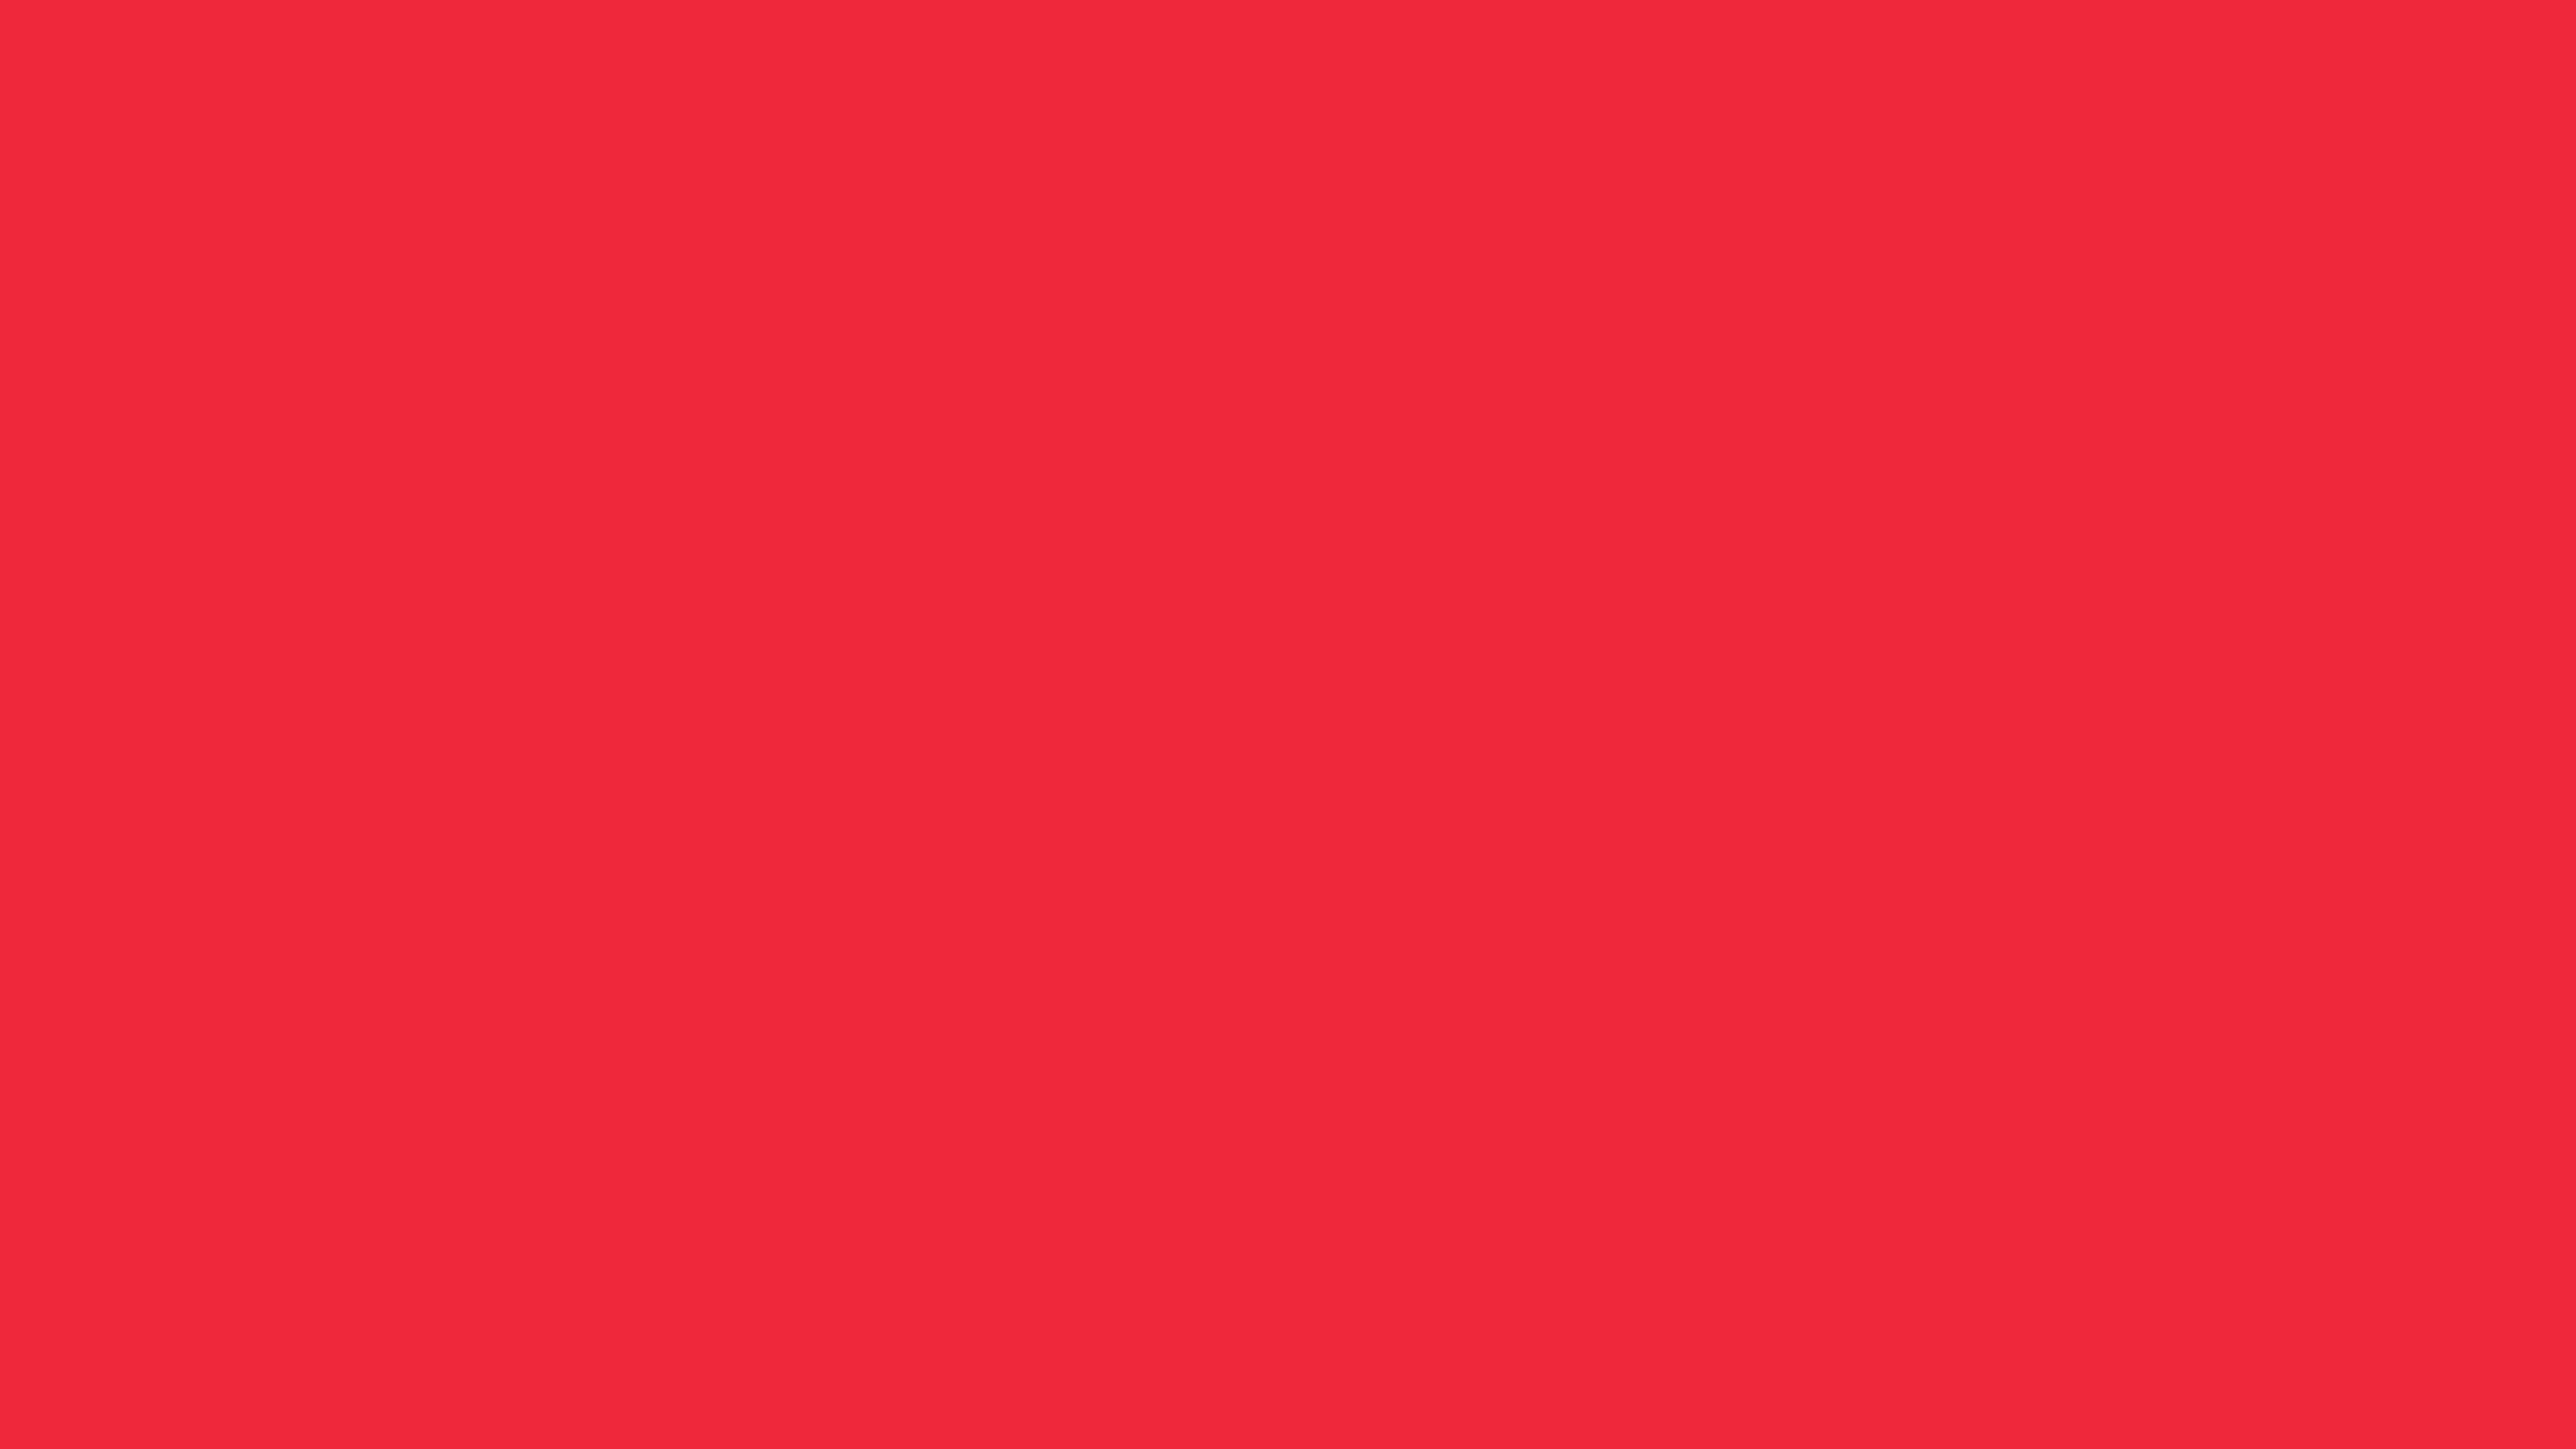 3840x2160 Imperial Red Solid Color Background